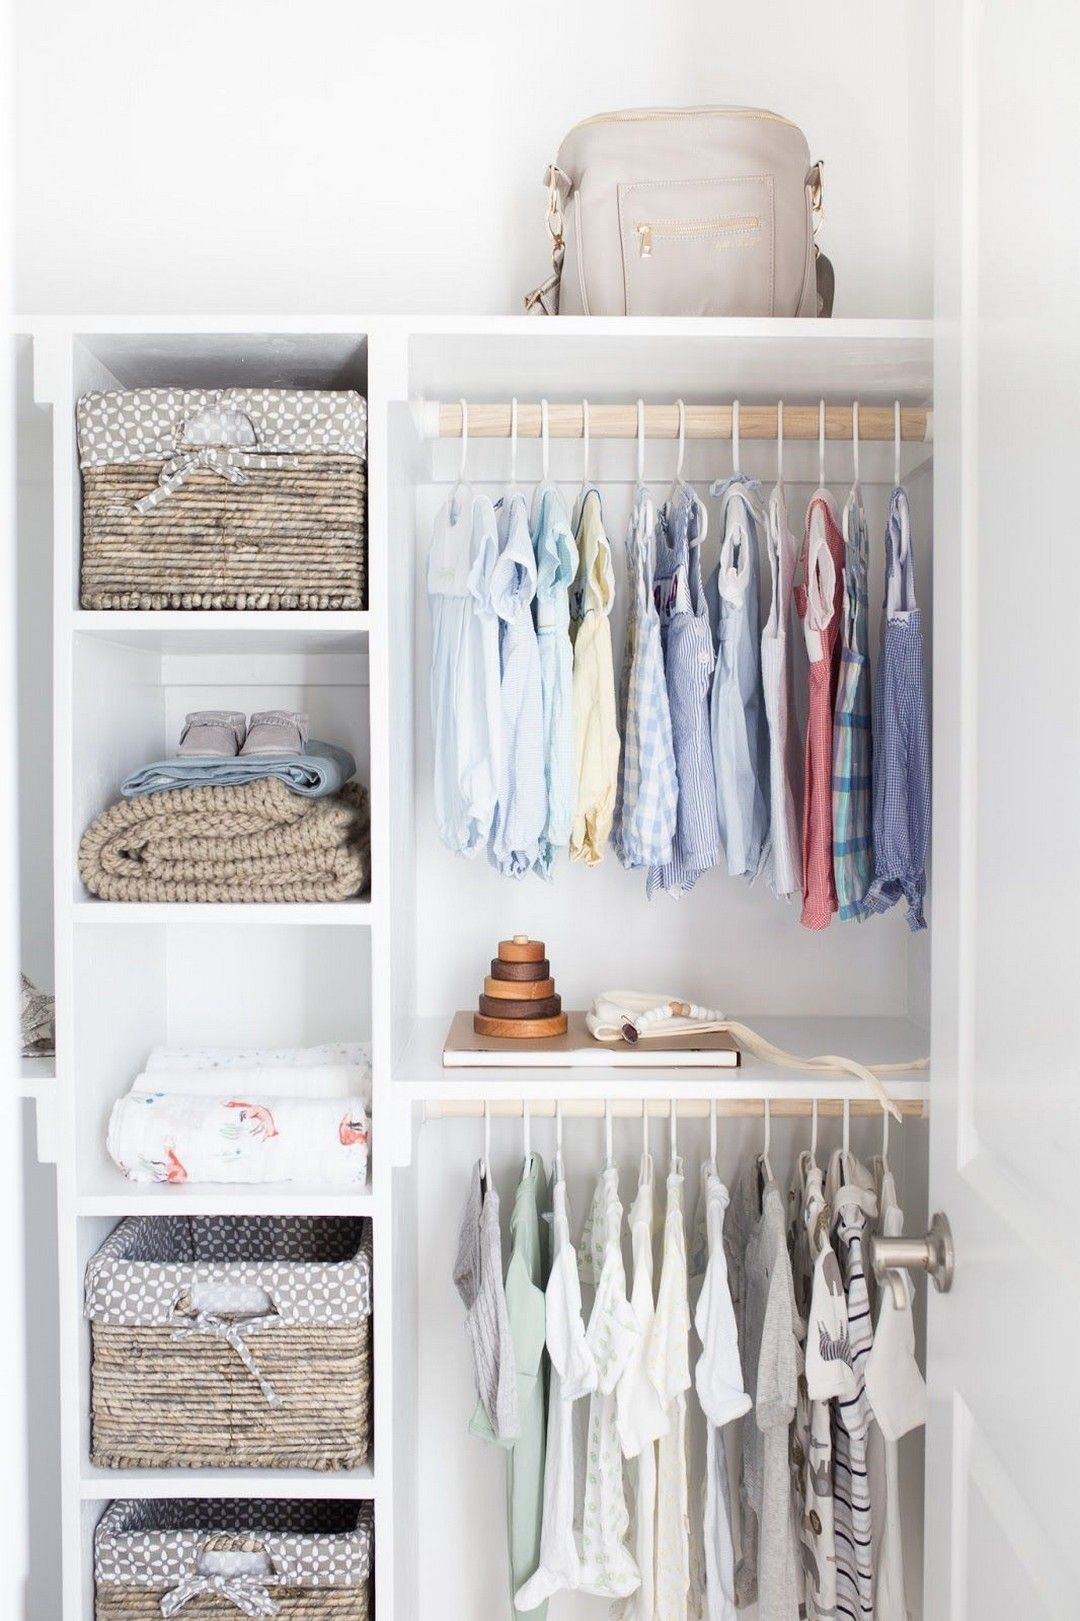 27 Kids and Nursery Closet Organization Ideas http://alladecor.com